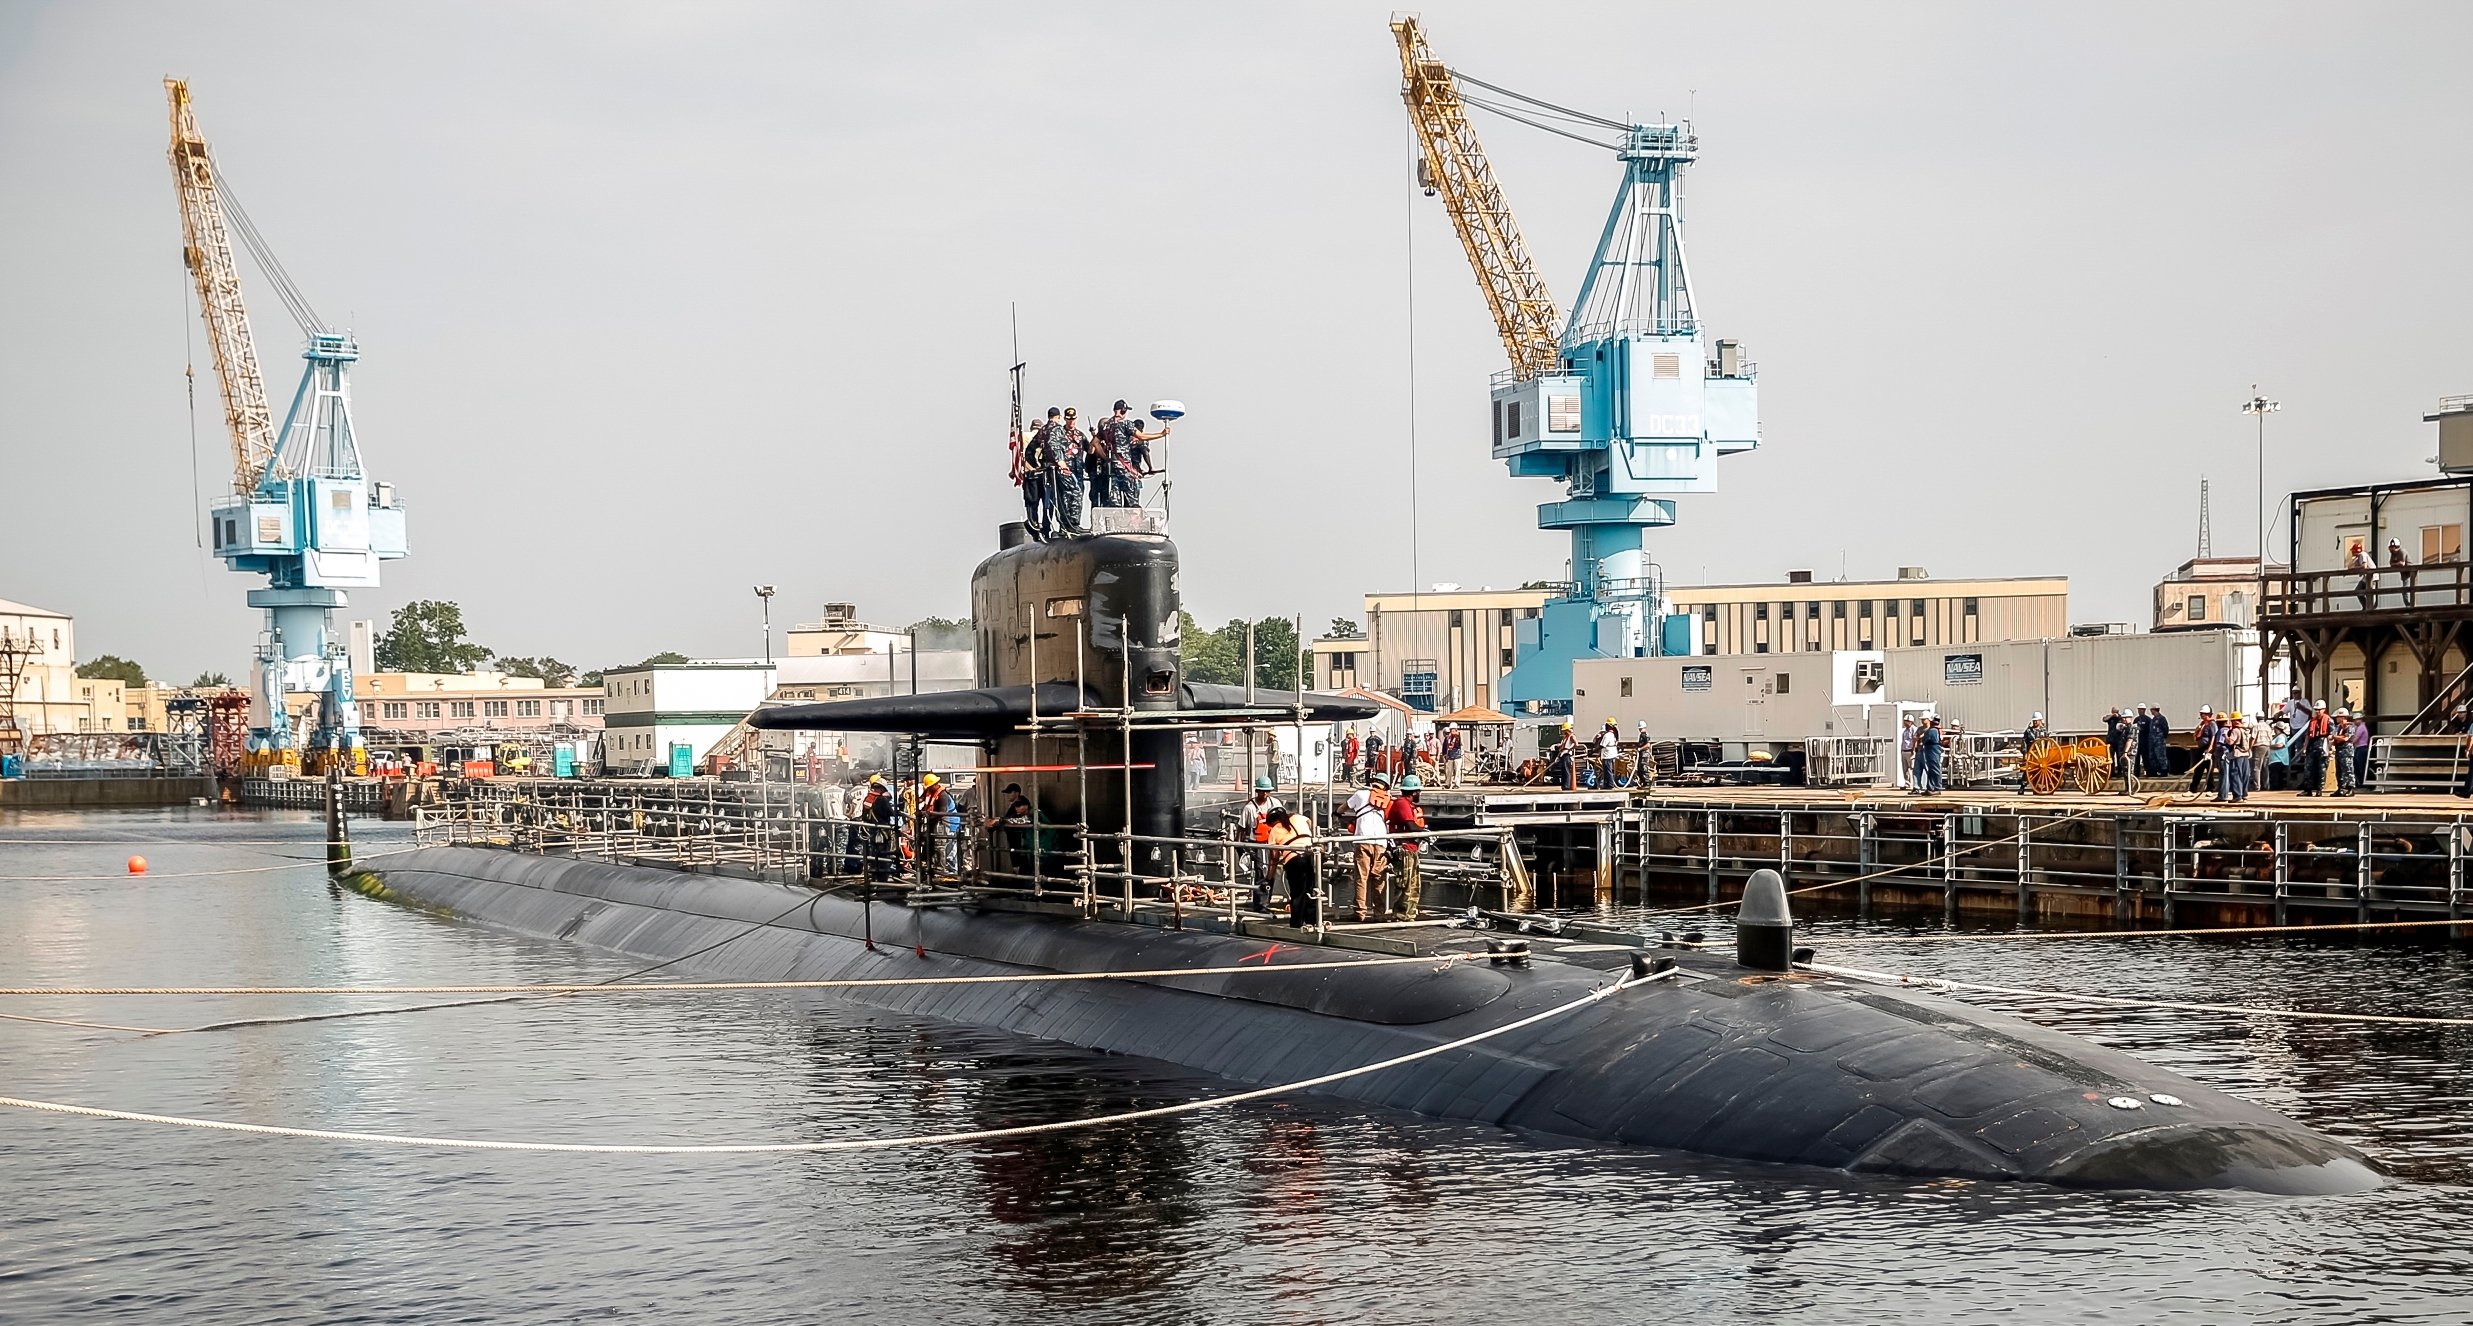 Los Angeles-class attack submarine USS Helena (SSN-725) arrives at Norfolk Naval Shipyard for a high-priority docking continuous maintenance availability on Aug. 20, 2015. US Navy Photo